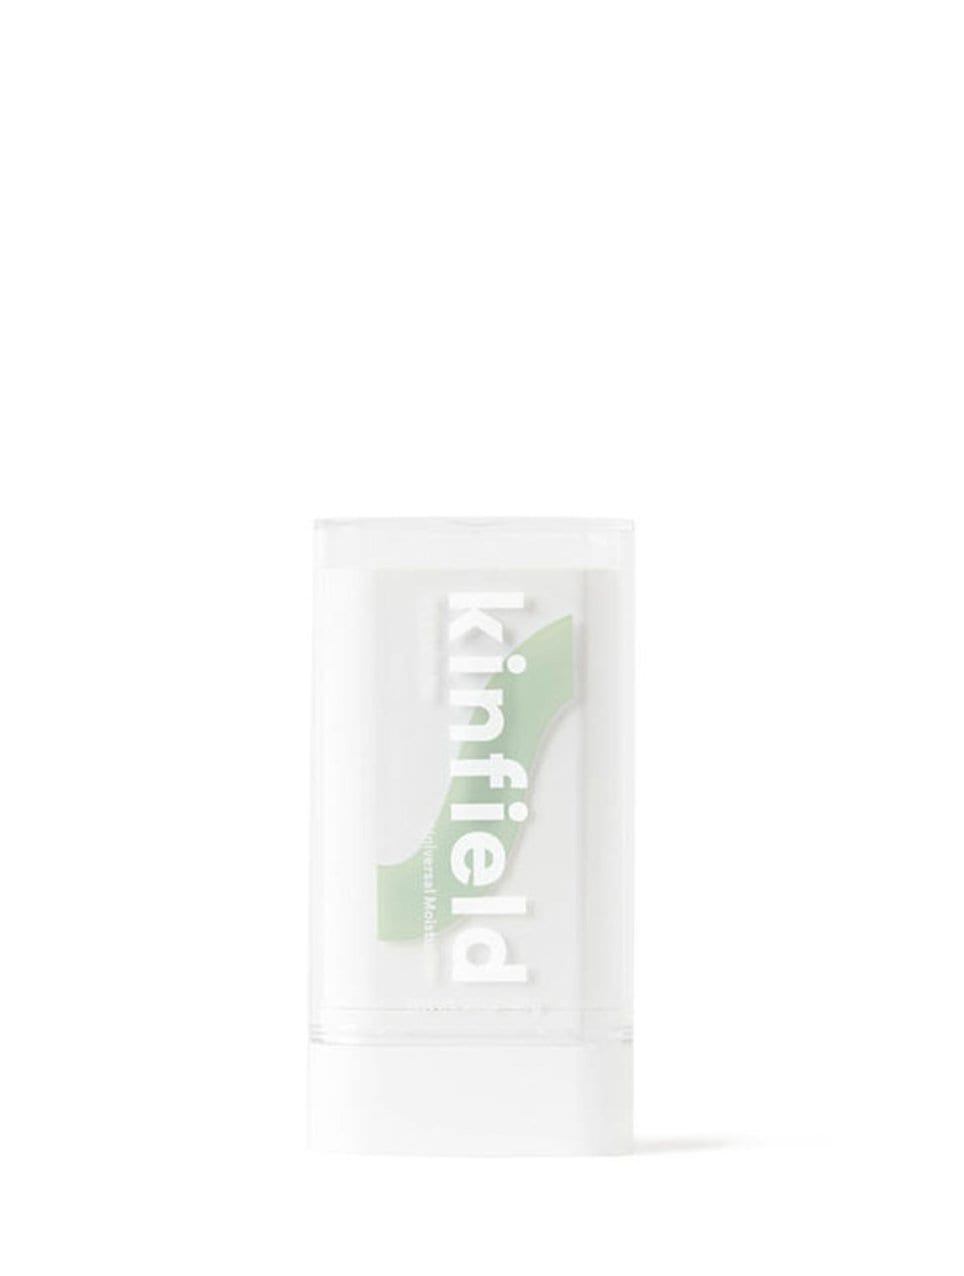 Waterbalm Universal Moisturizer / Neighborhood Goods